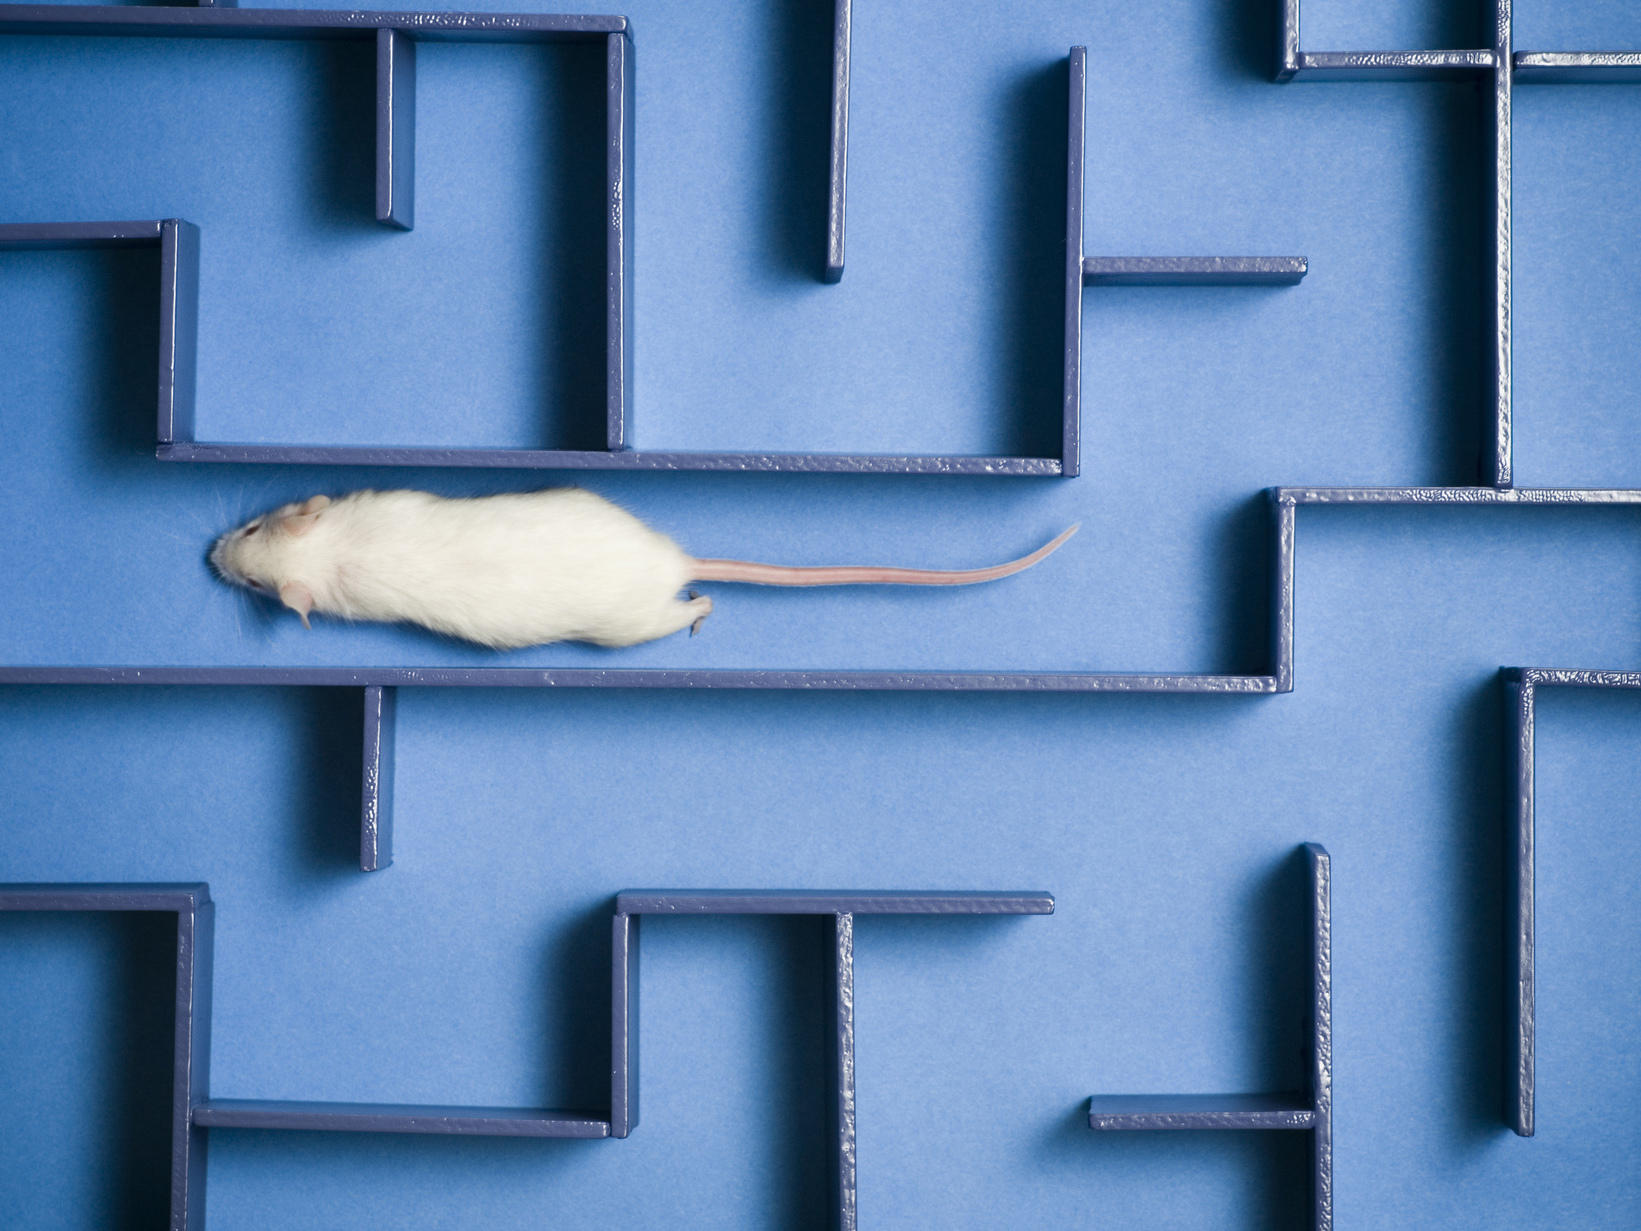 Umbilical cord blood plasma enhances old mice's brain activity